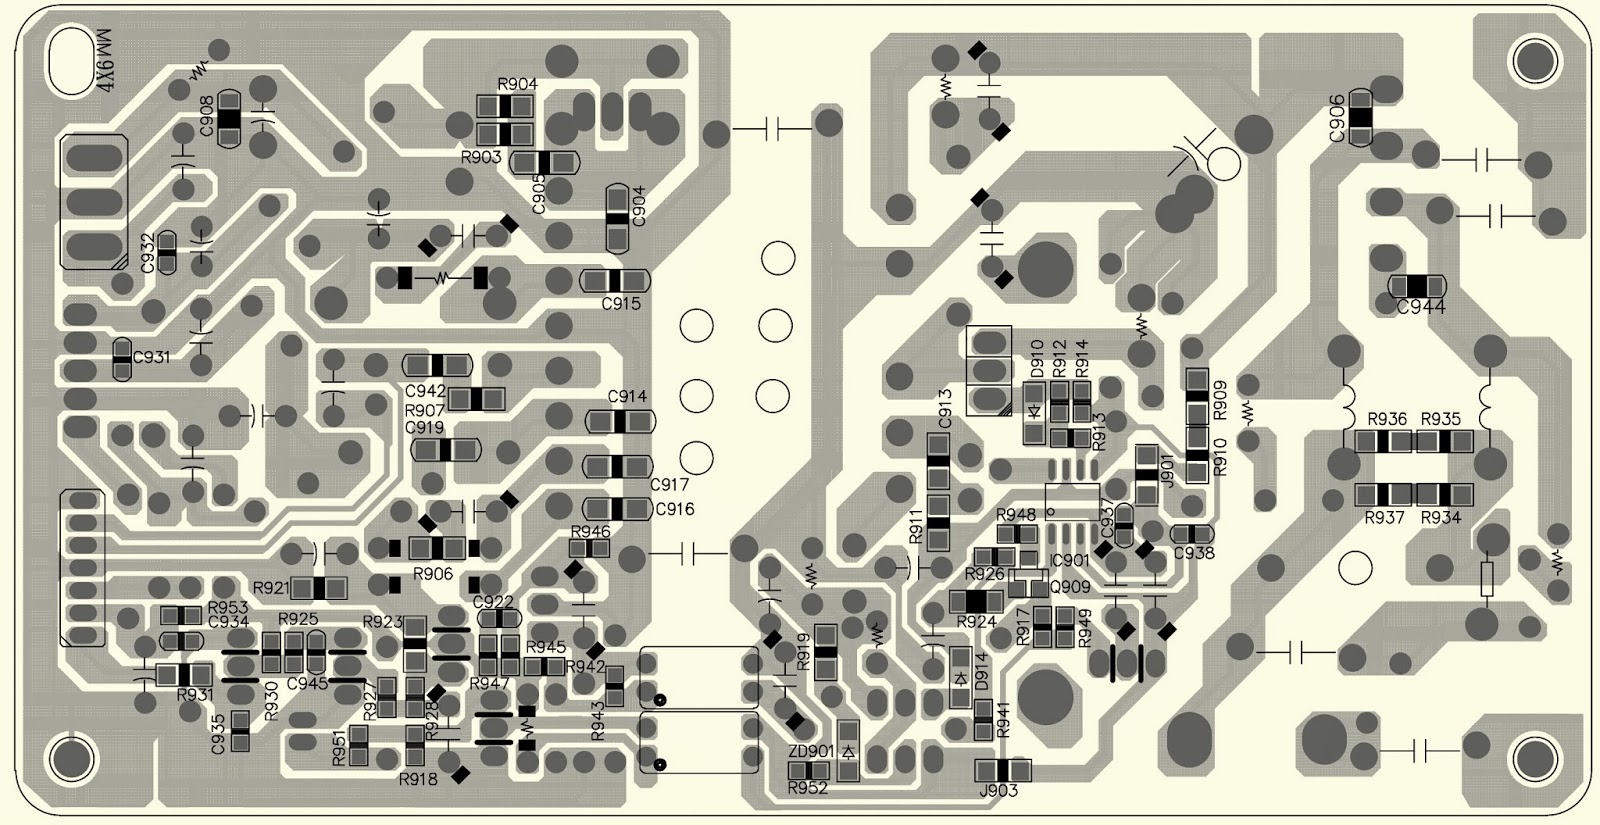 Magnificent 450w Smps Circuit Diagram Collection - Electrical ...